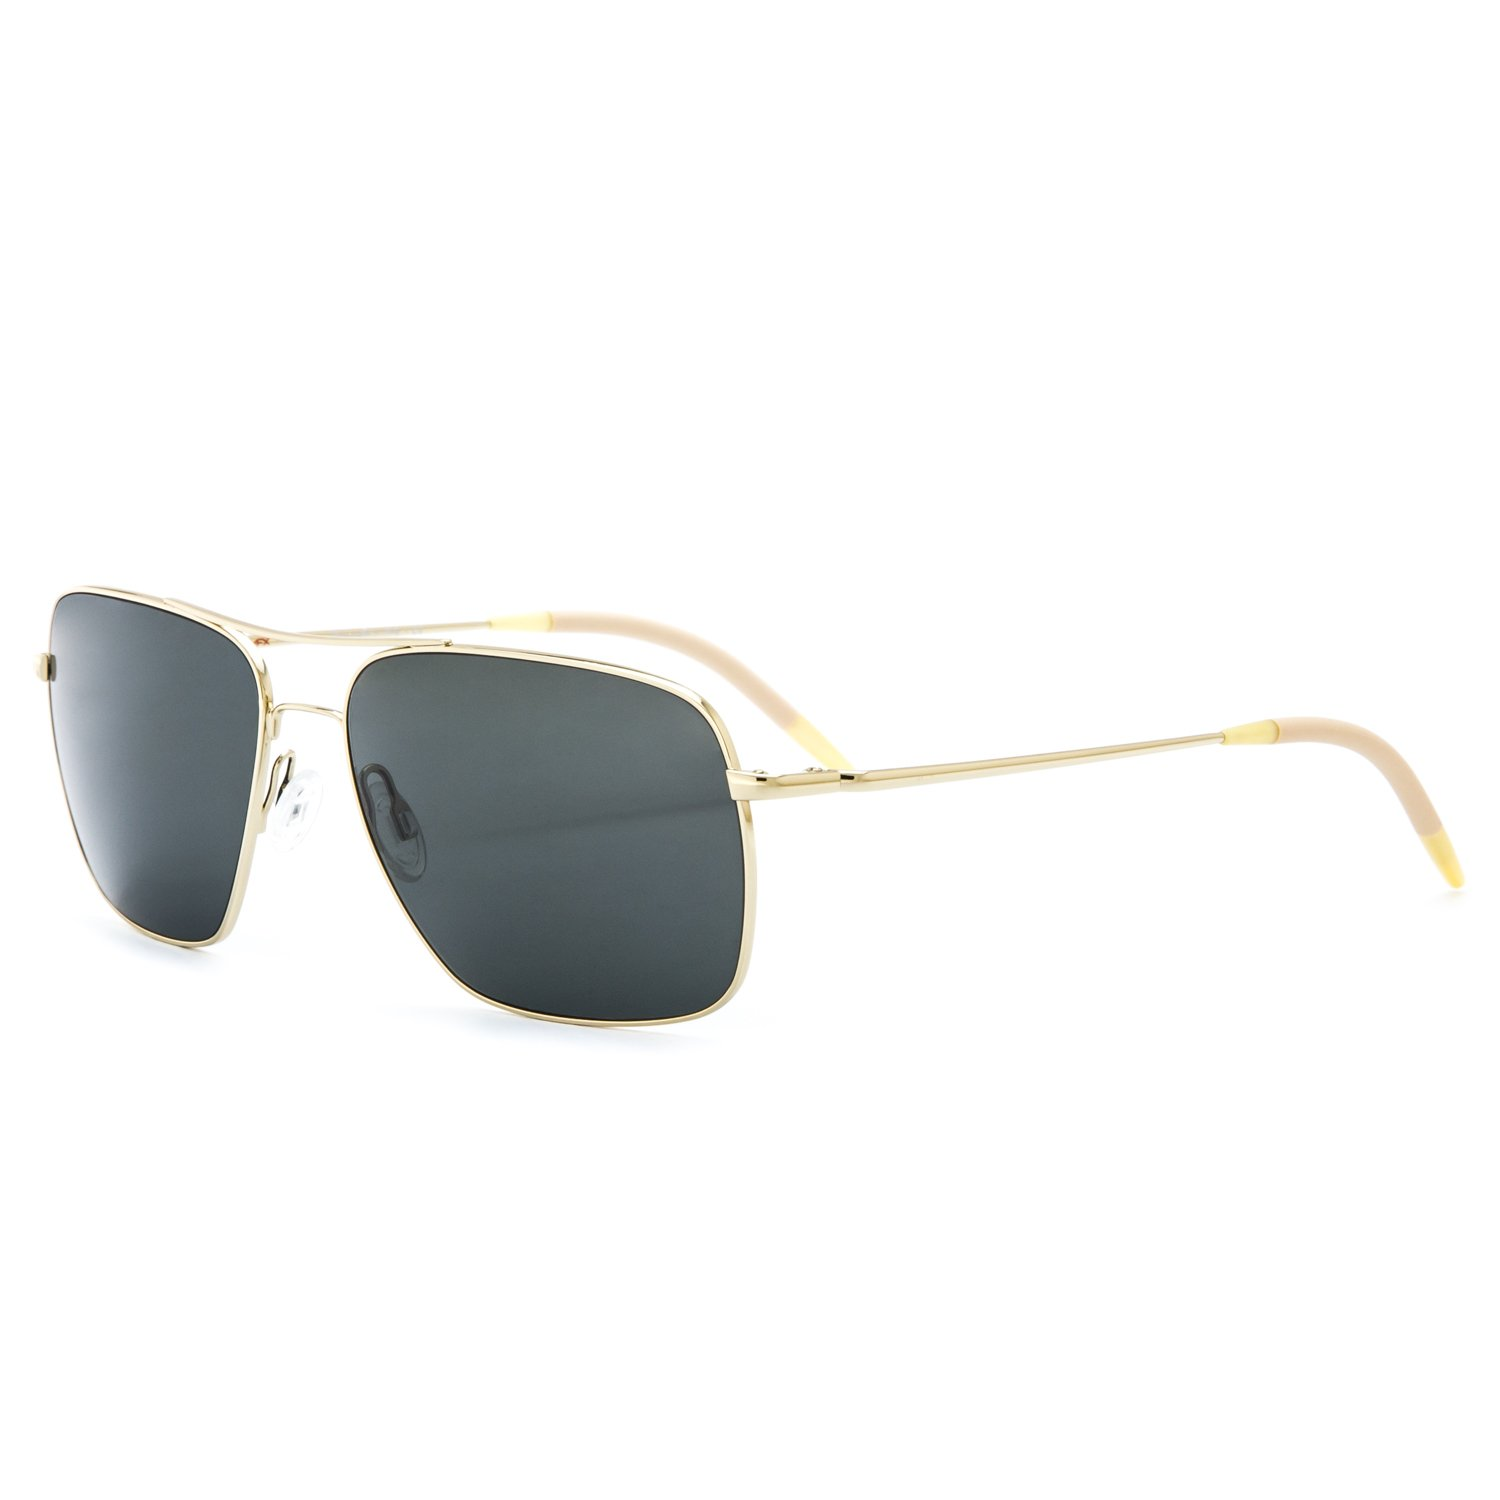 b0abf51e787 Oliver Peoples Clifton Sunglasses 5035 P1 Gold with Grey G15 Polarized  Glass  Oliver Peoples  Amazon.ca  Clothing   Accessories